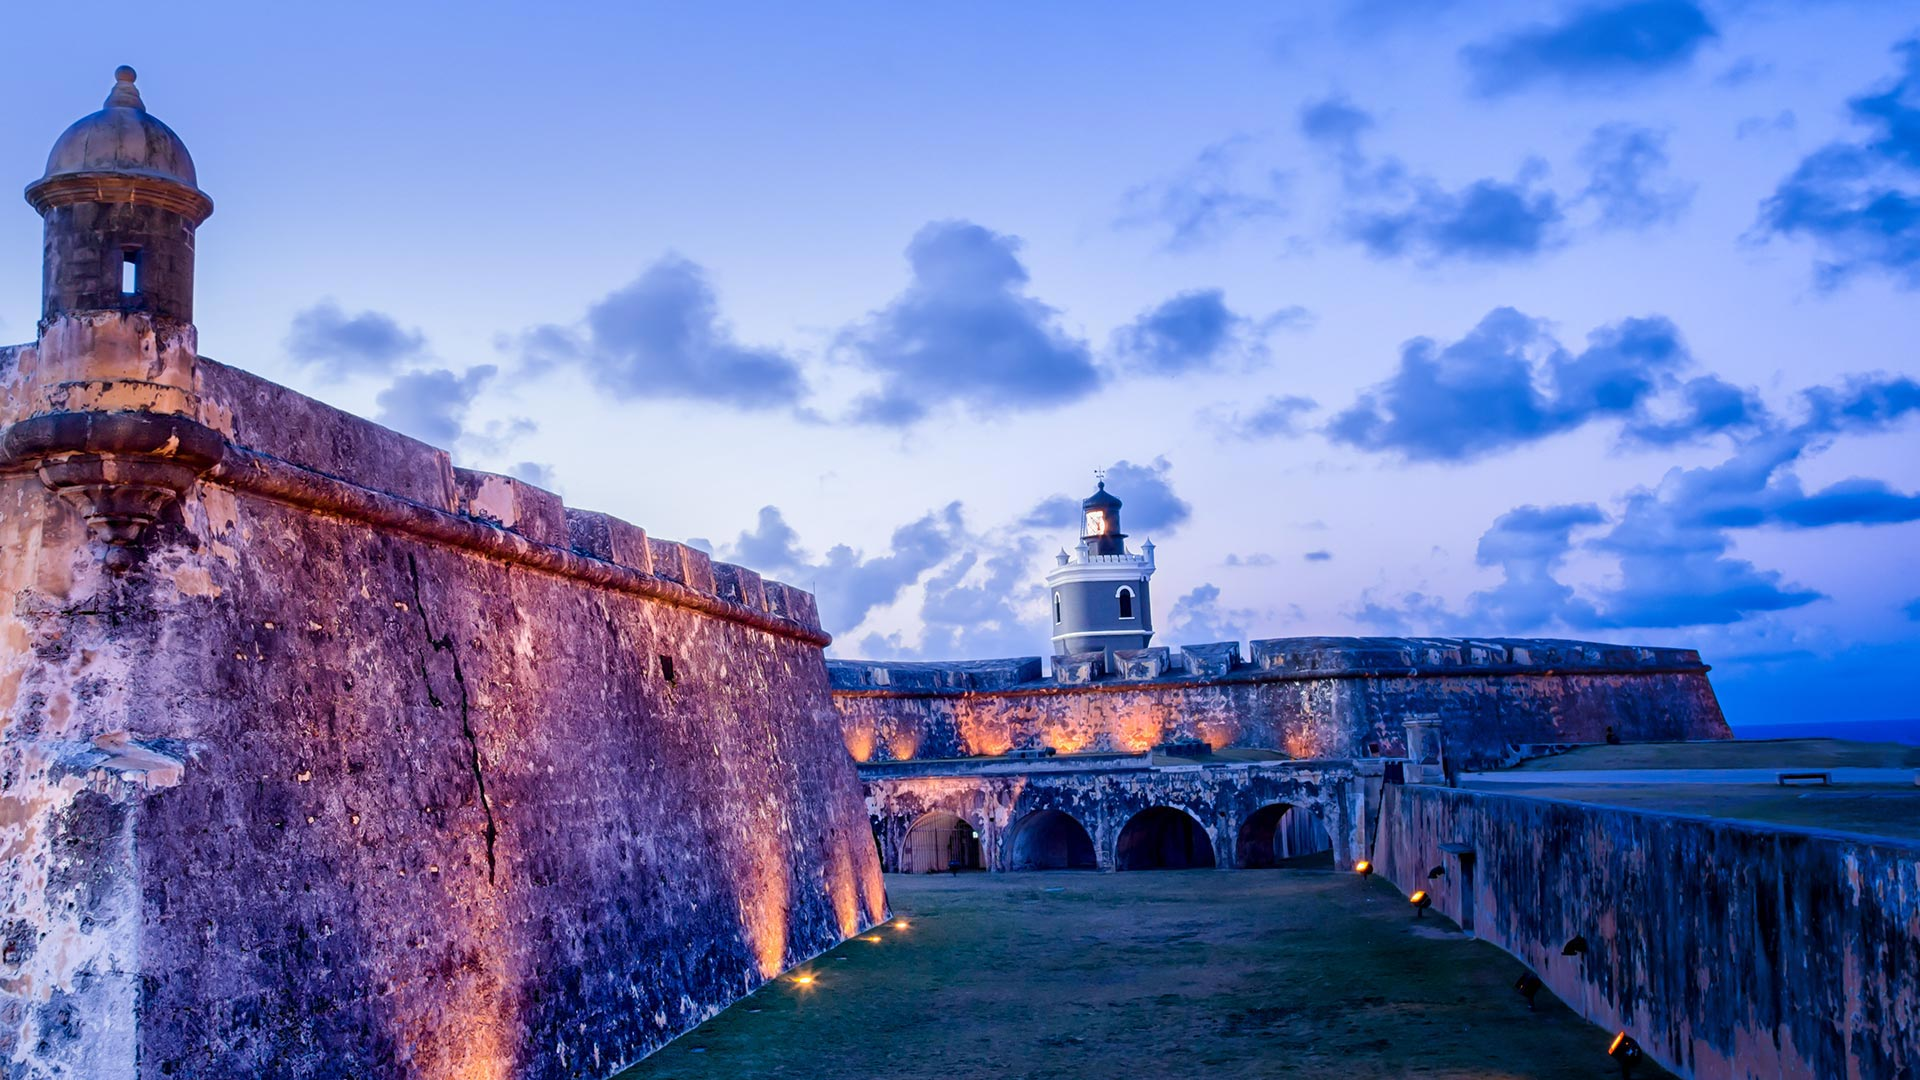 Castillo San Felipe del Morro in Old San Juan, Puerto Rico (© grandriver/Getty Images)(Bing United States)